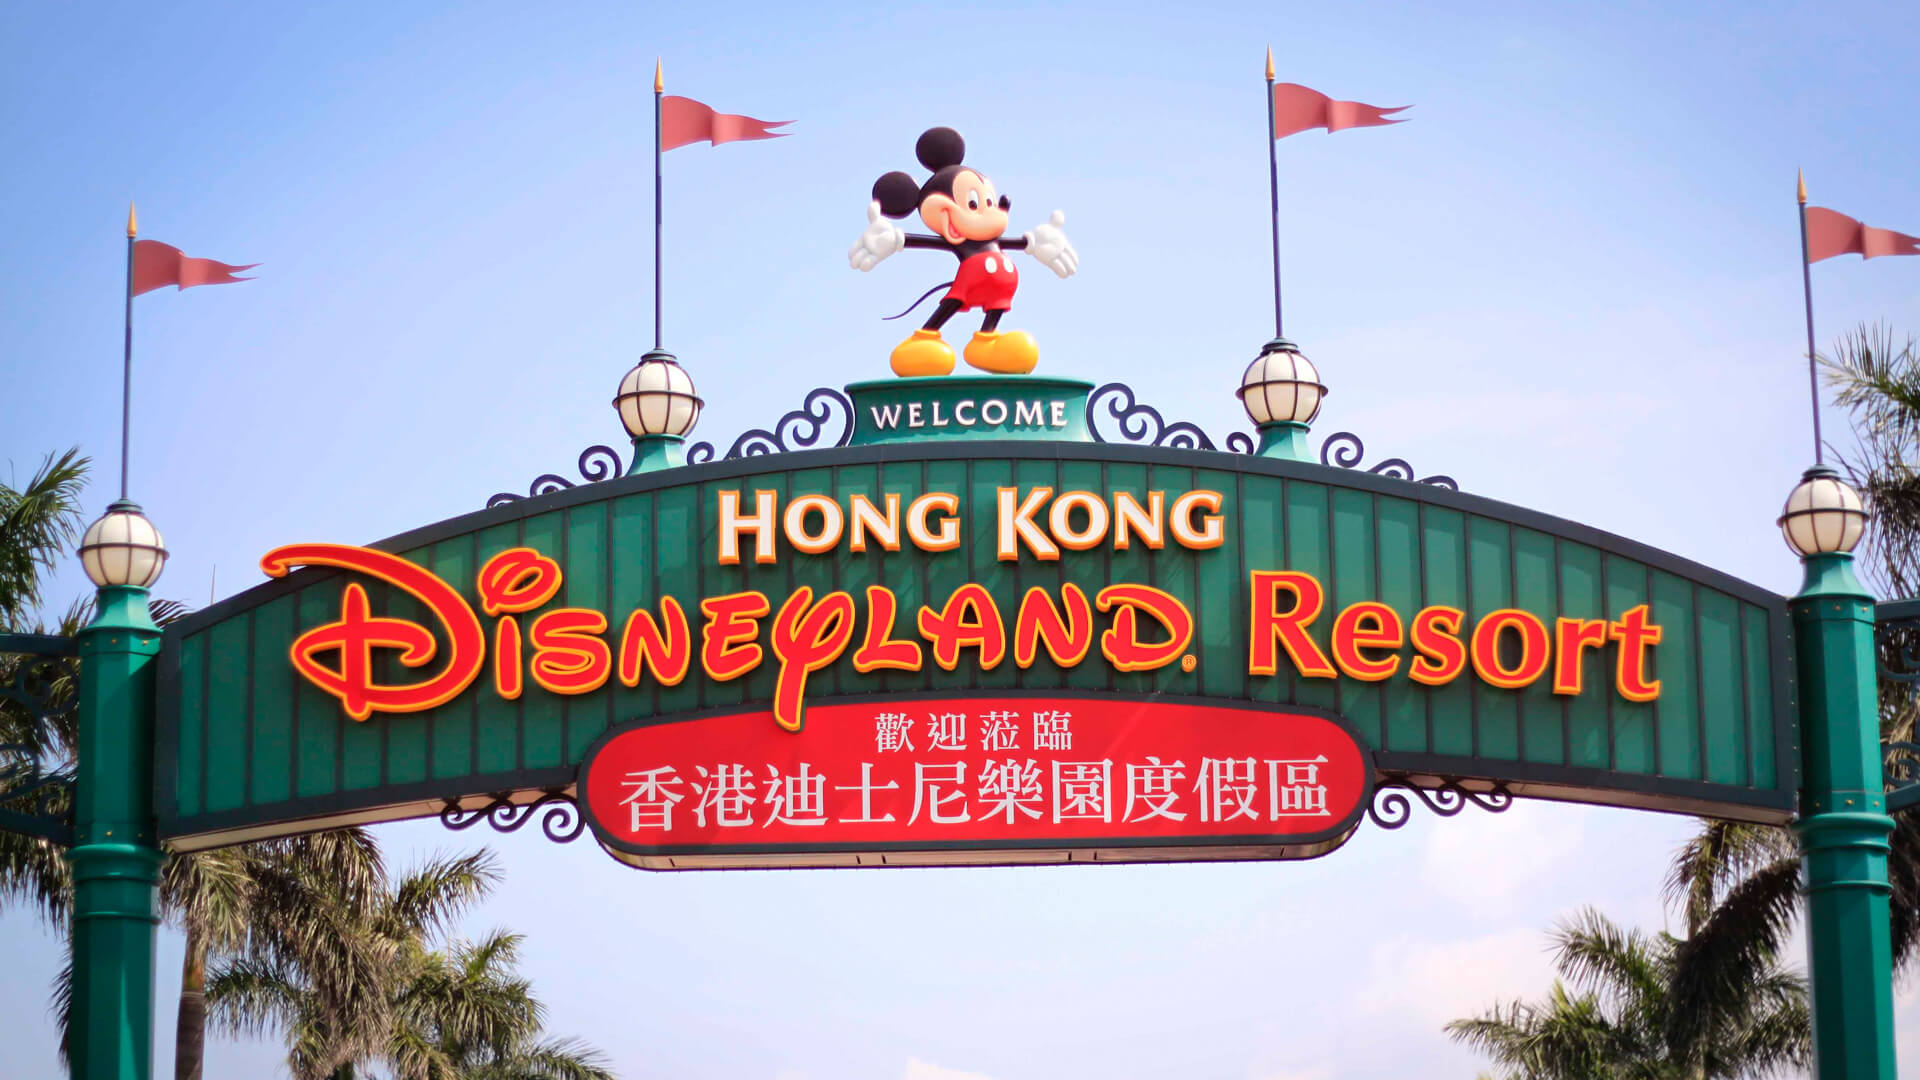 Hongkong/Disneyland/Macau Tour Pckage - 5 Nights 6 Days